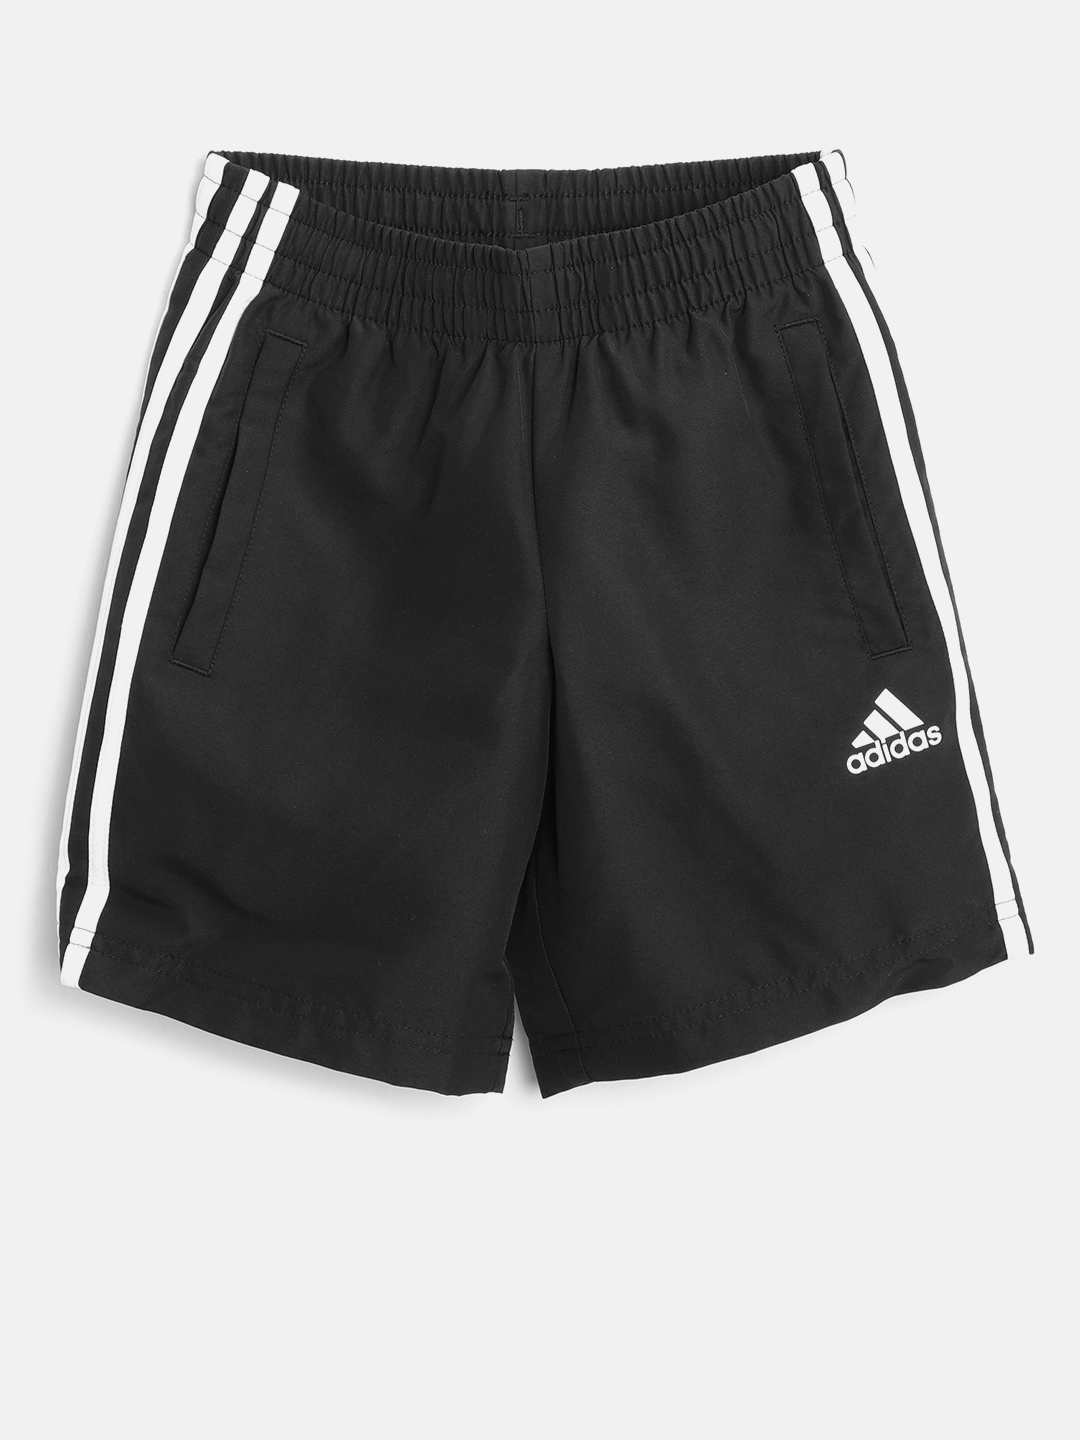 ce05ac44789123 Buy Black Essential 3 Stripes Shorts - Shorts for Boys 7101523